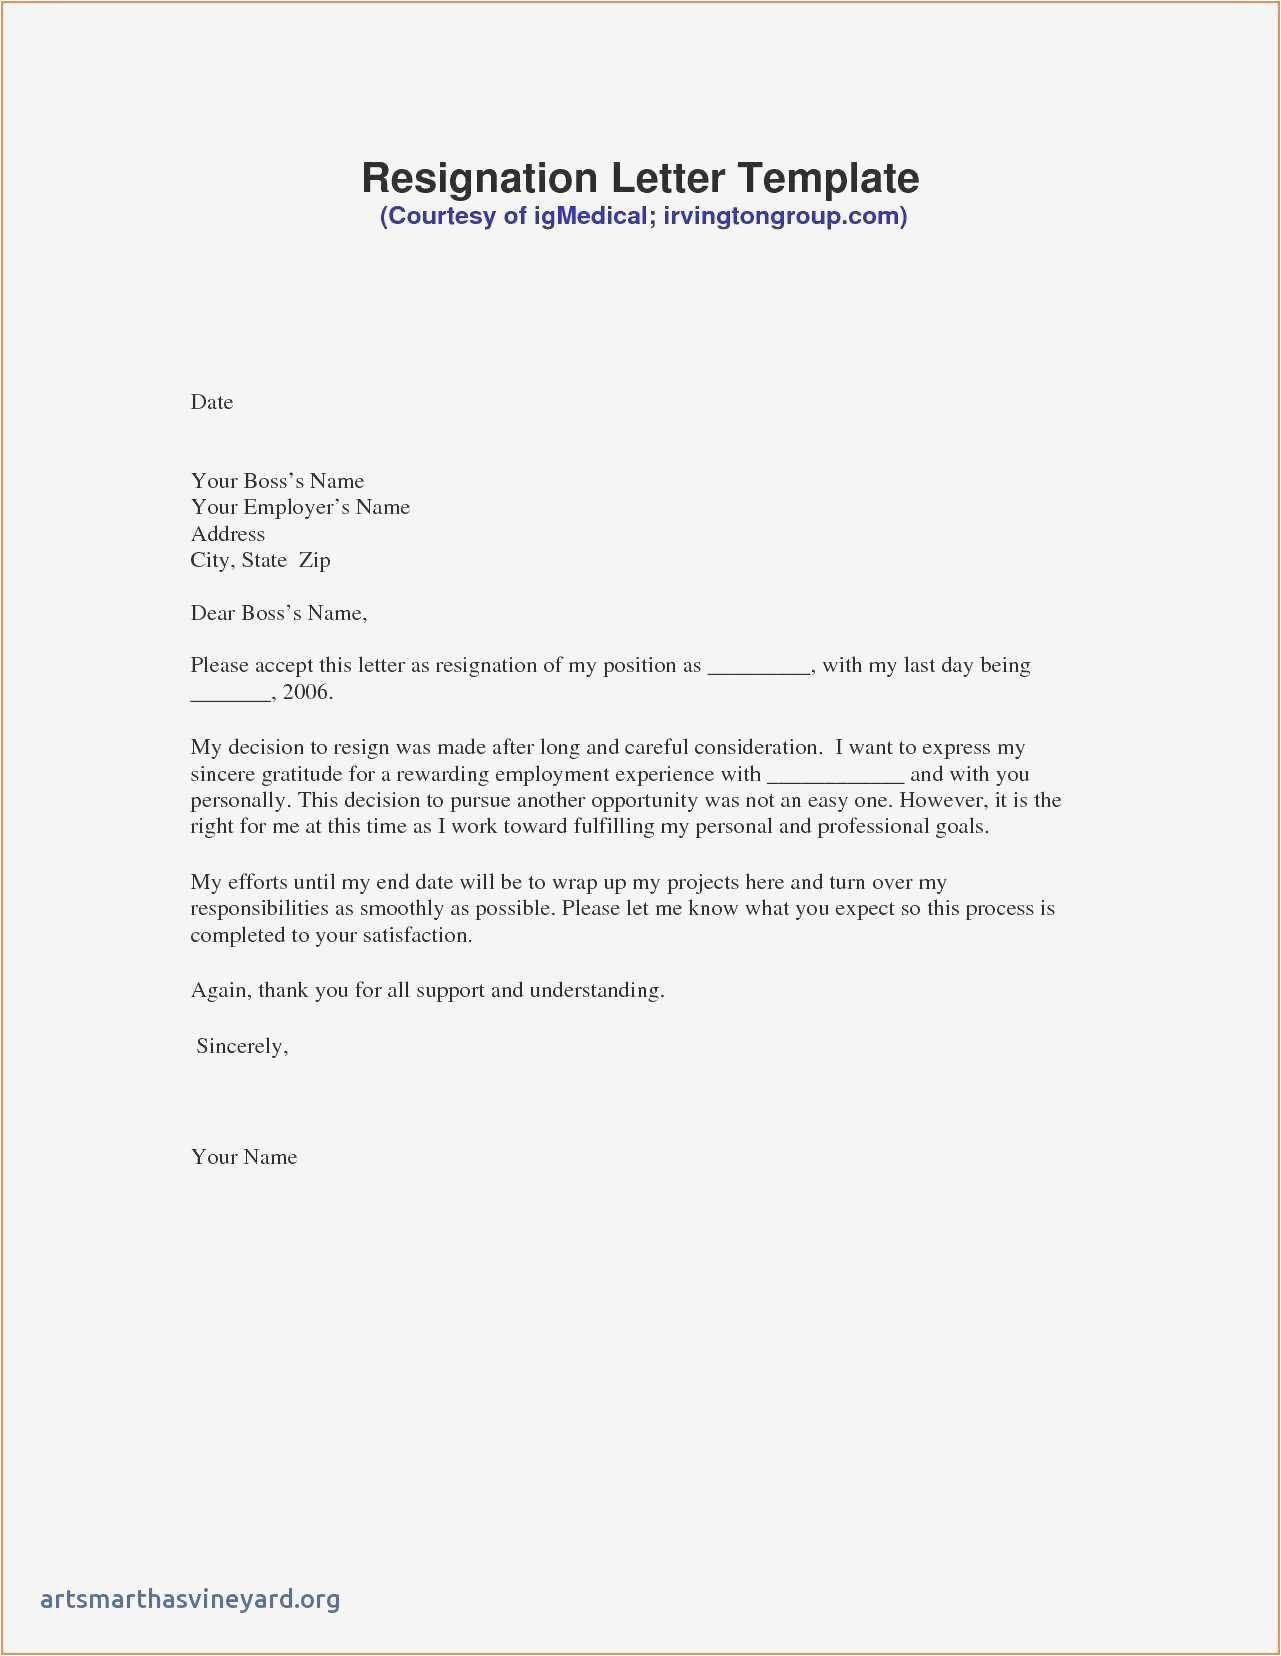 Combination Resume Templates Lovely Download 55 Bination Resume Template 2019 Letter Template Word Resignation Letter Letter Templates Template for a resignation letter